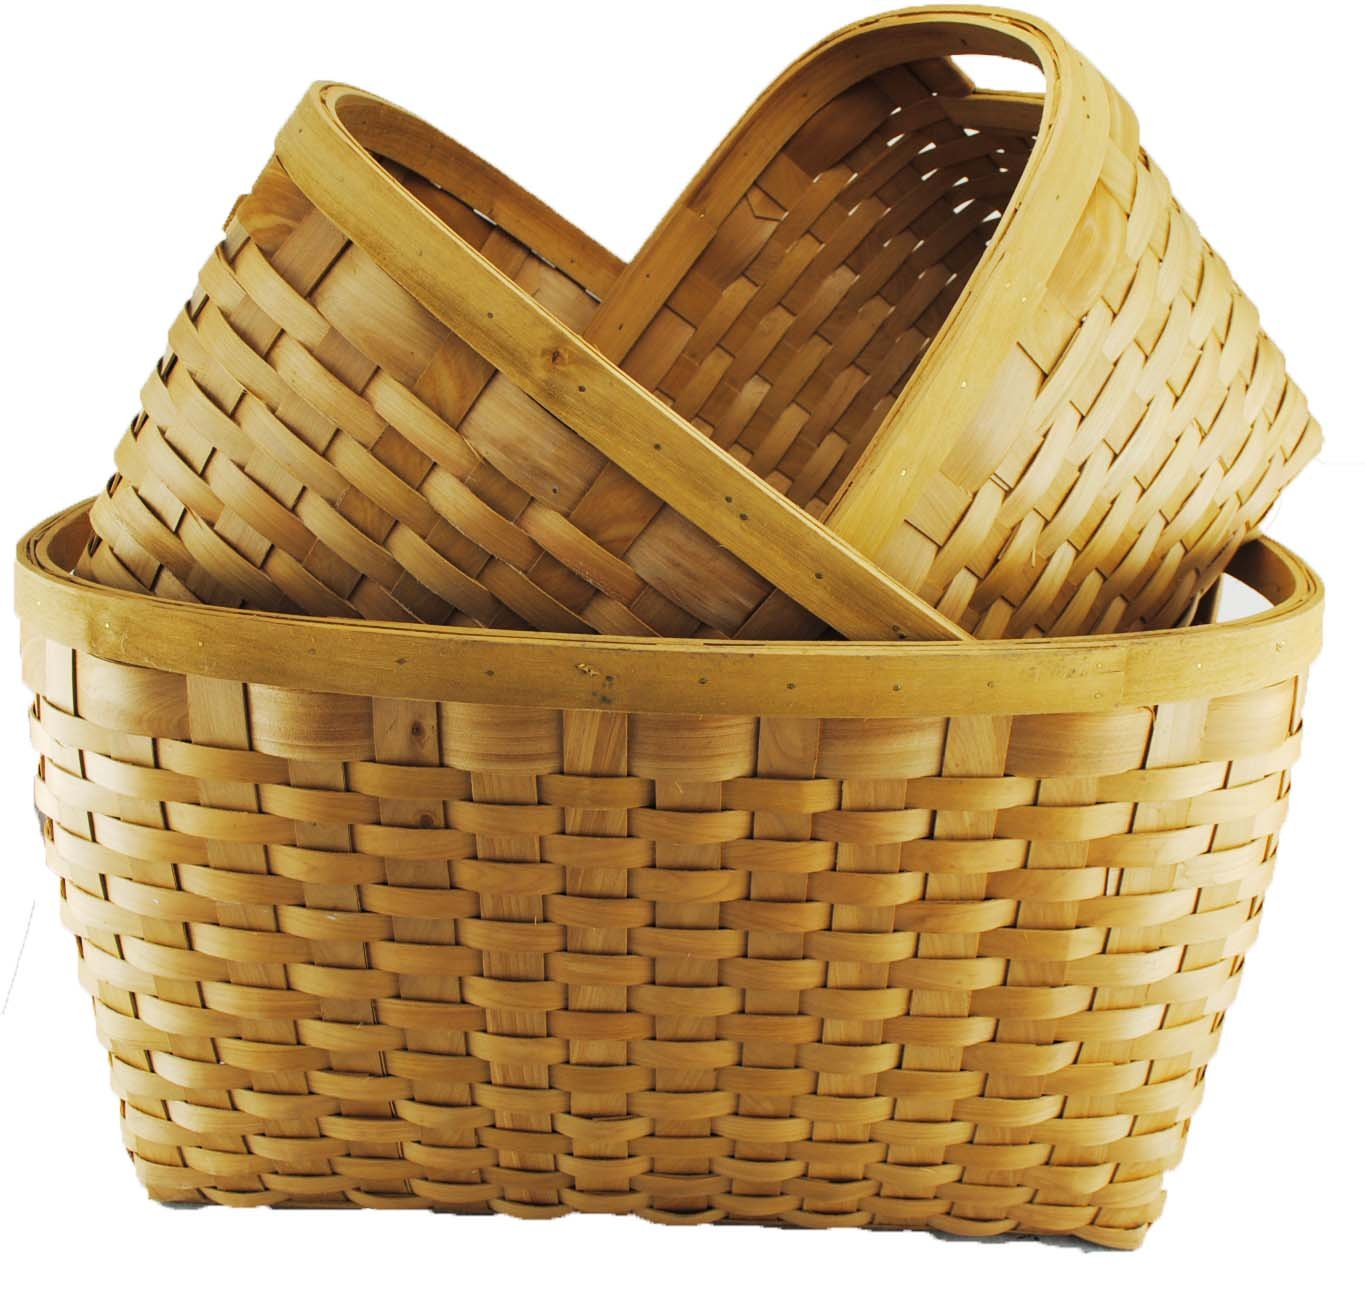 TOPOT Jambo Set of 3 Wood chip Laundry Storage Baskets in Honey Brown Color by TopherTrading (Image #1)